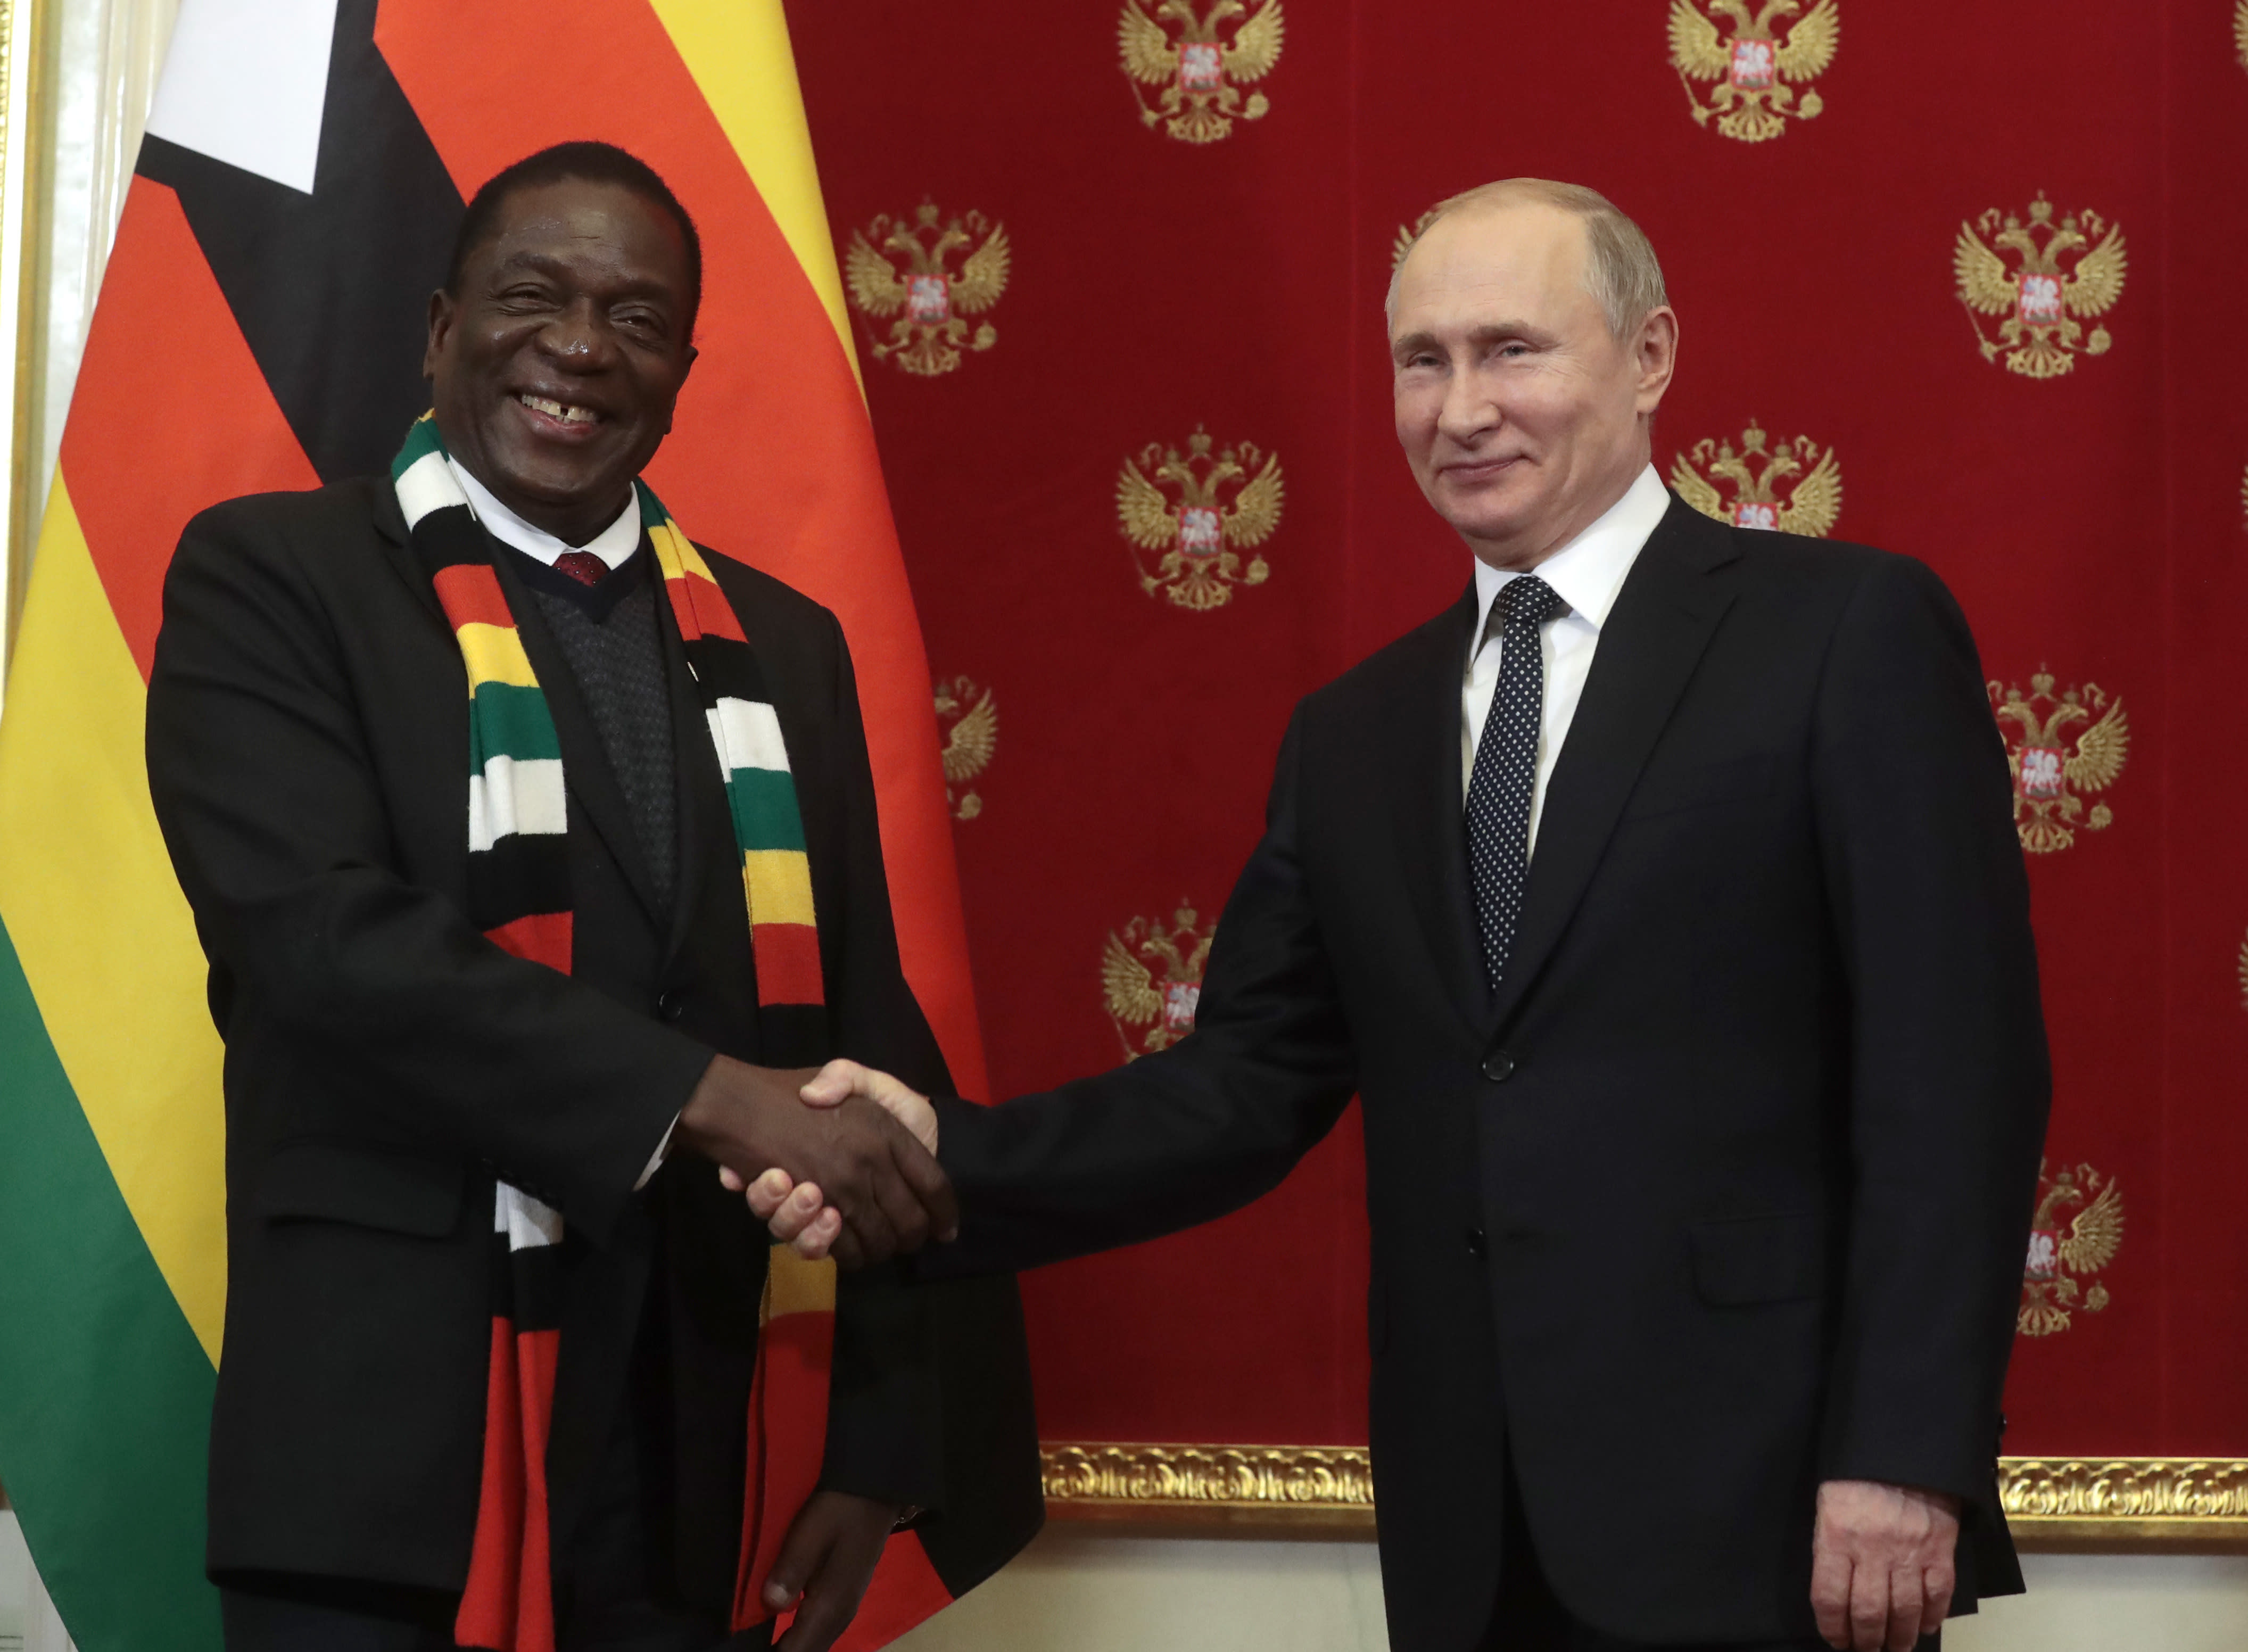 Russian President Vladimir Putin, right, and Zimbabwe's President Emmerson Dambudzo Mnangagwa shake hands after a signing ceremony during his meeting with in Moscow, Russia, Tuesday, Jan. 15, 2019. (Sergei Chirikov/Pool Photo via AP)